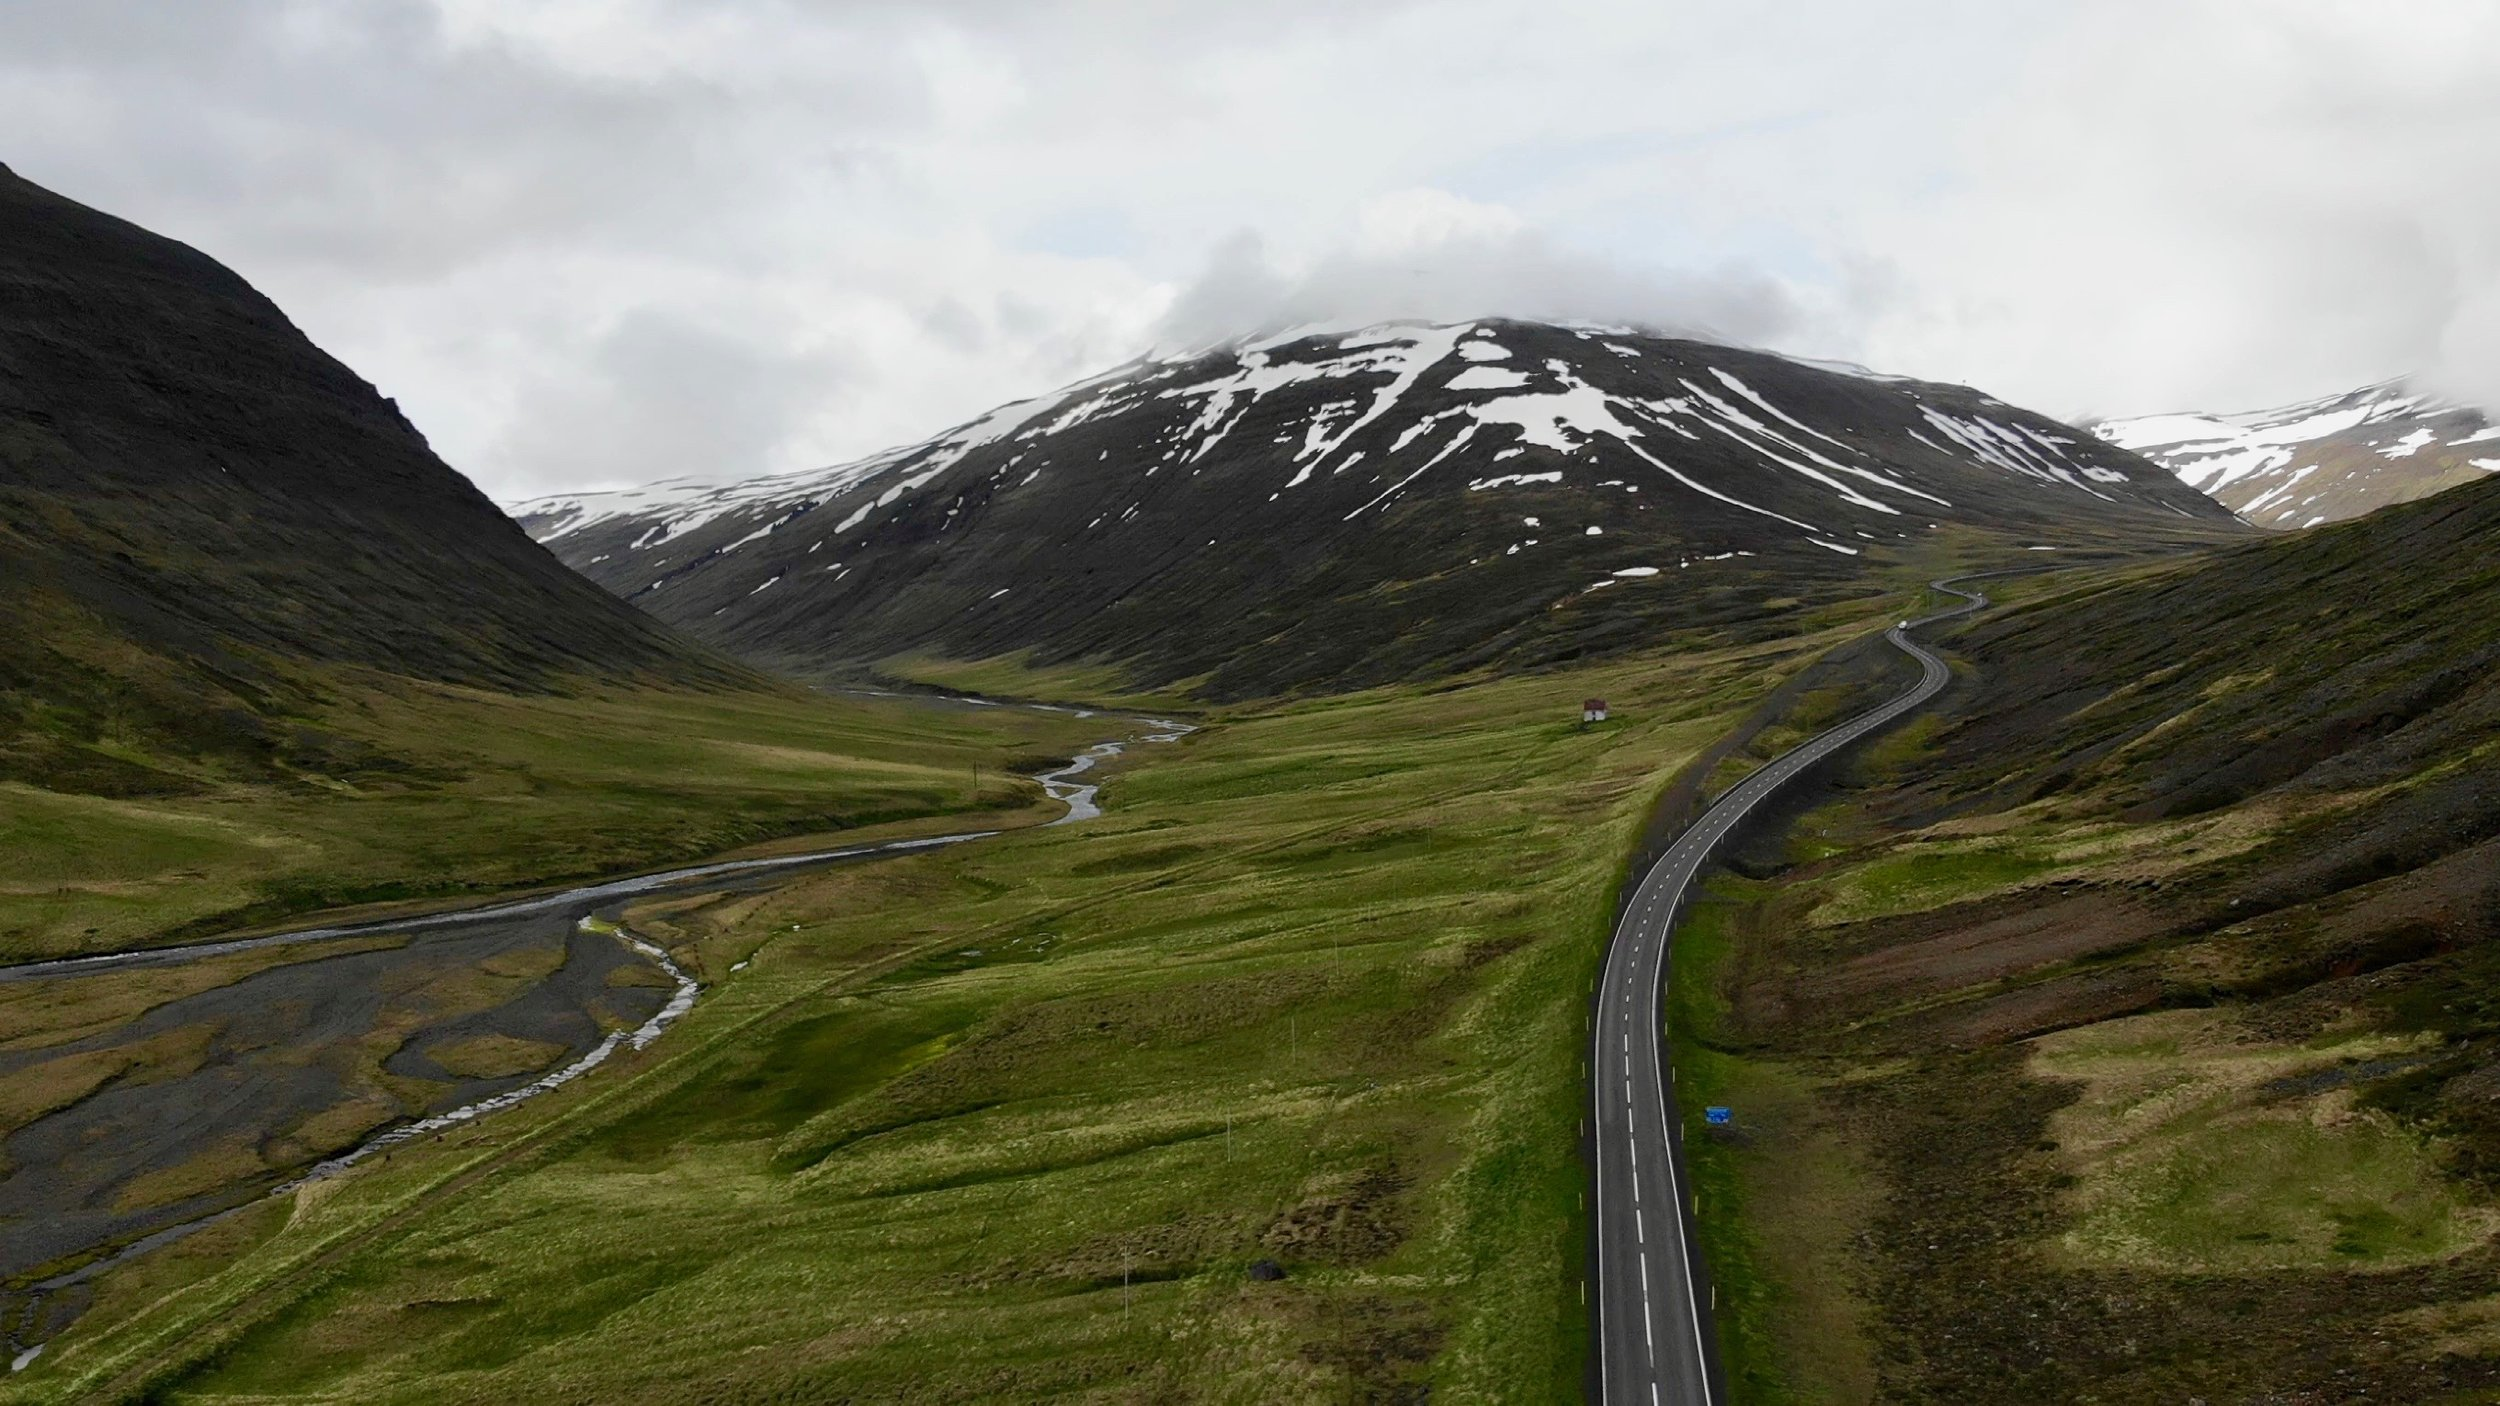 Drone photo of North Iceland Drive to Snæfellsnes Peninsula